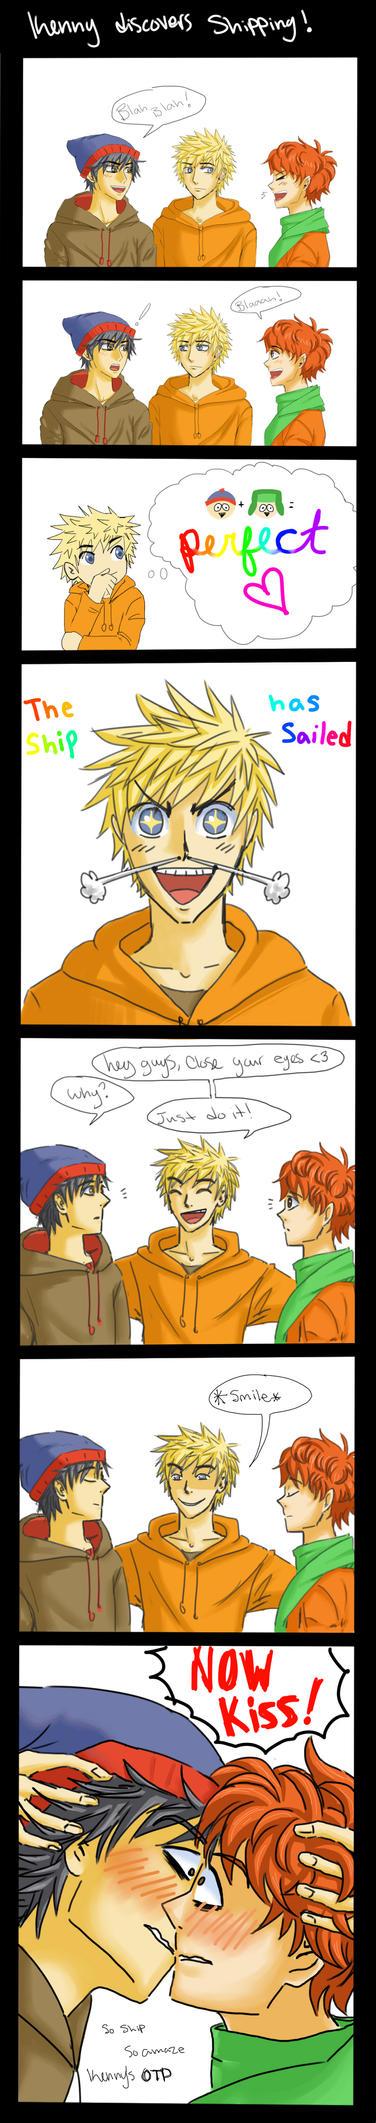 Kenny Starts Shipping: SP comic by LilSnowFox